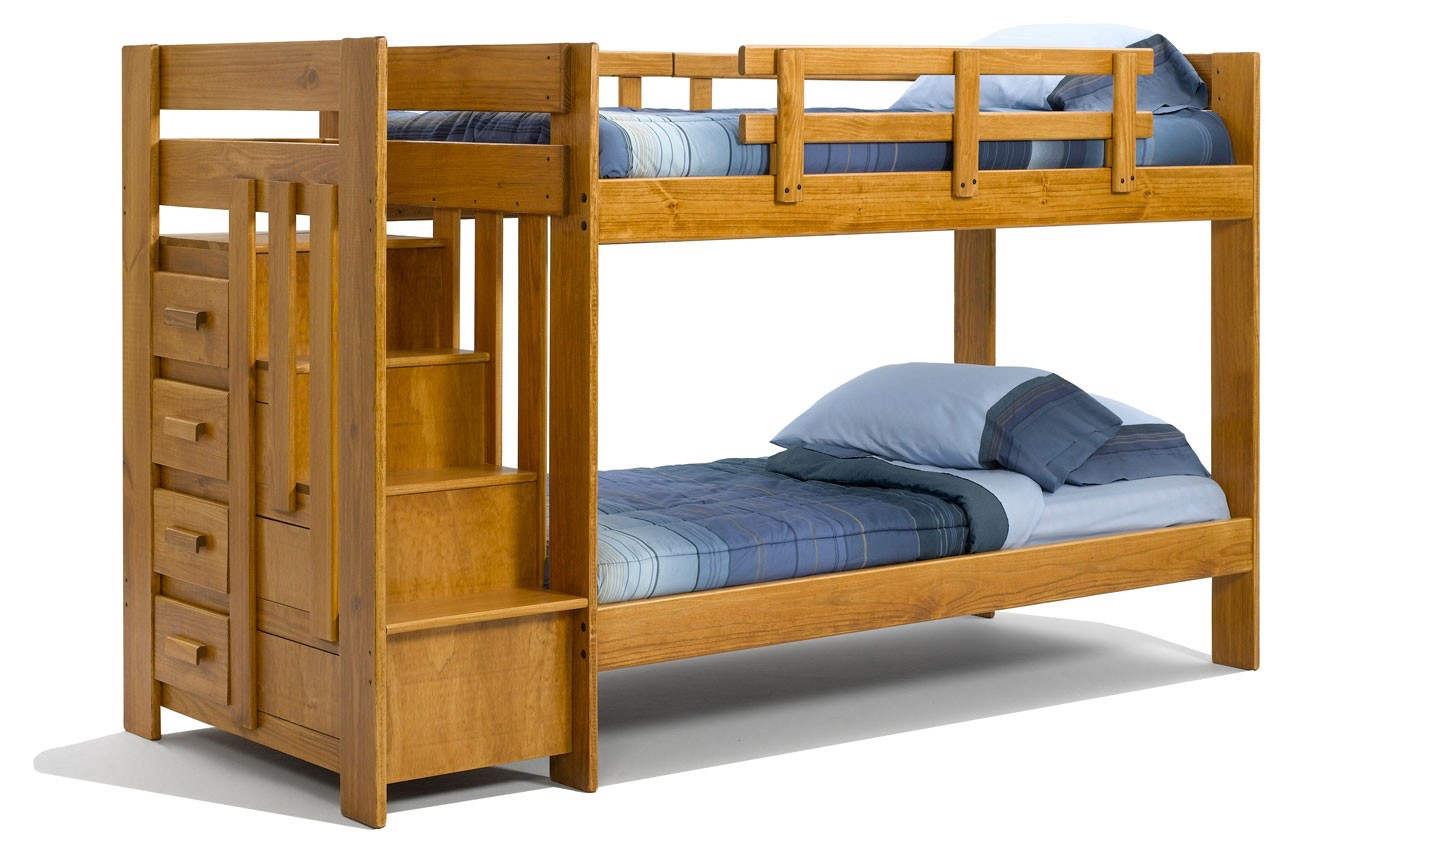 Woodcrest Bunk Beds